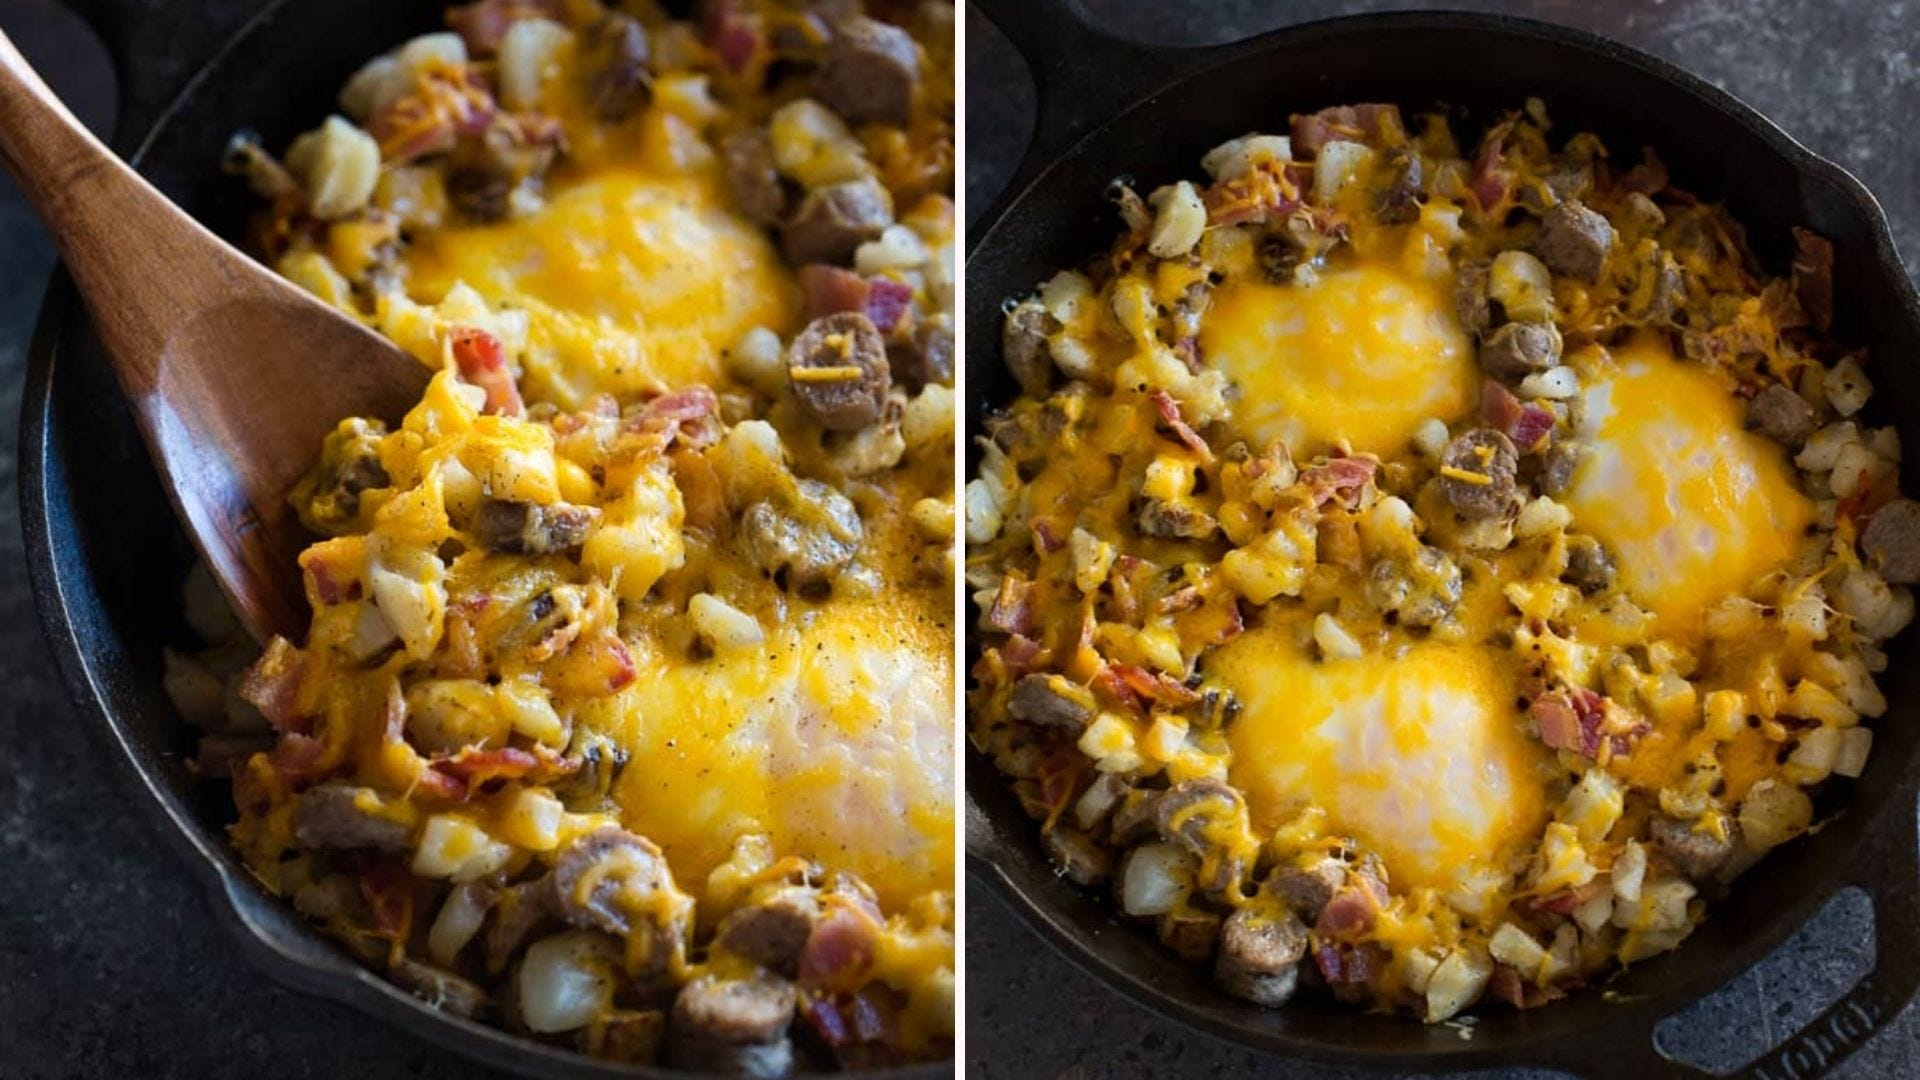 A breakfast skillet full of hash-brown casserole with melted cheddar.